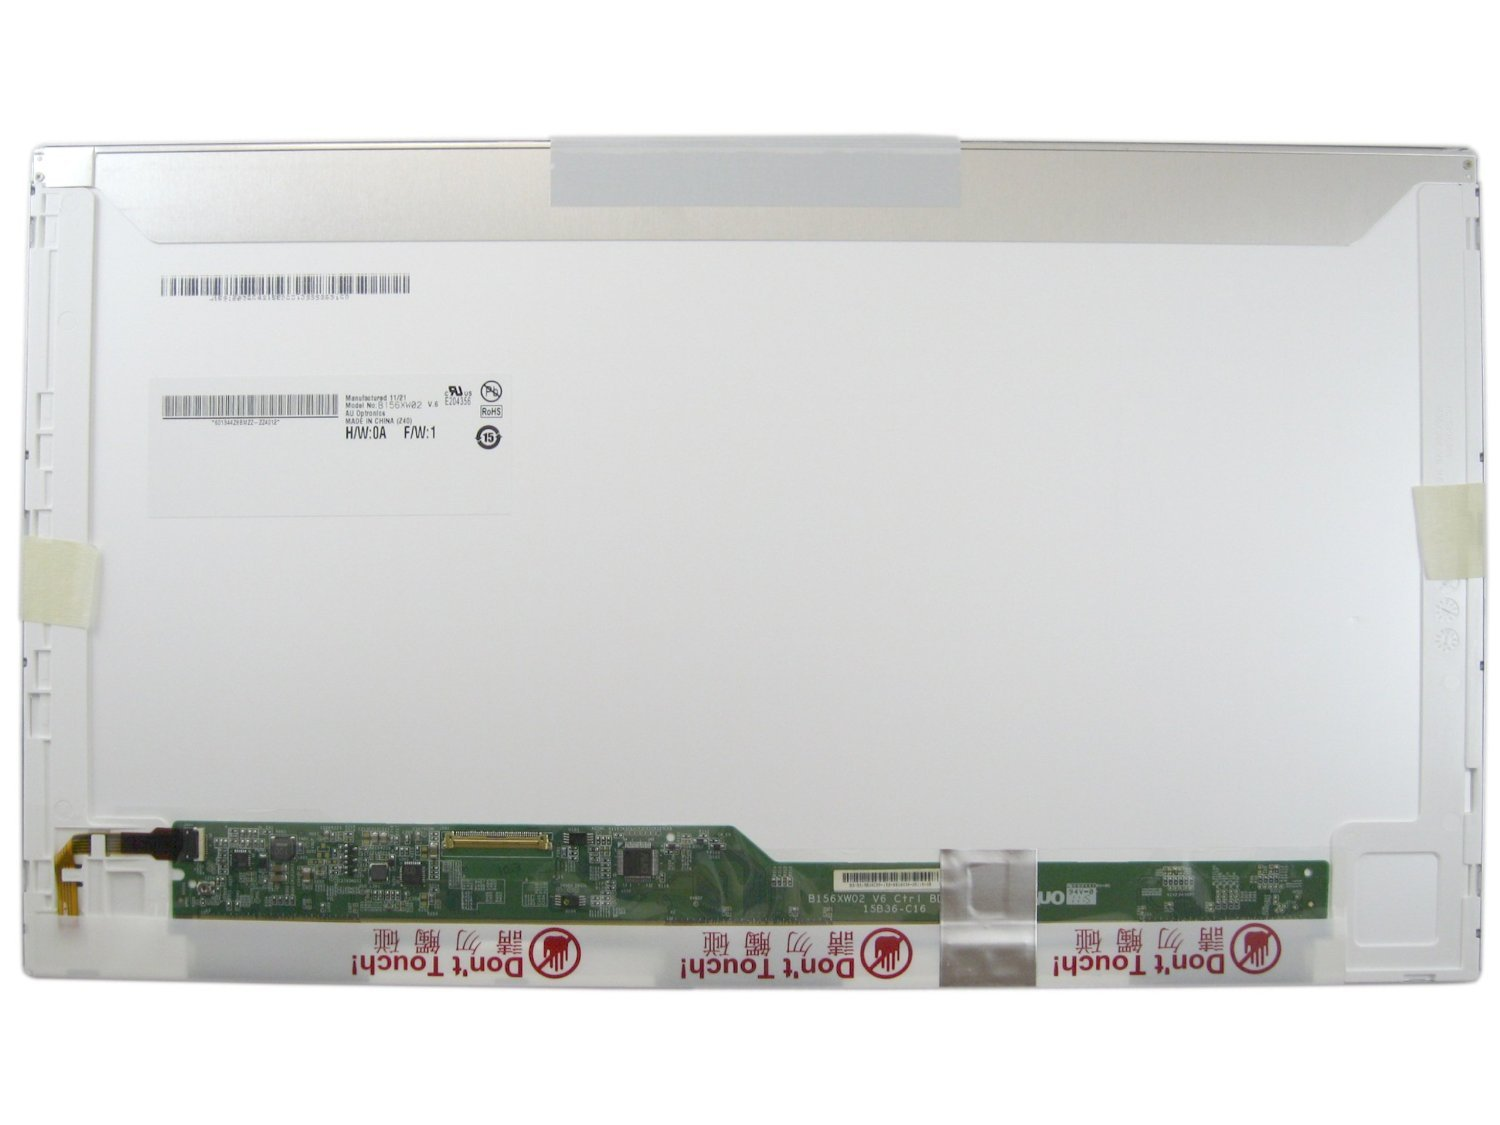 Toshiba Satellite Screen 143 Listings Keyboard C805 C800 Series C55 C55d New Replacement 156 Led Lcd Wxga Hd Laptop 7699